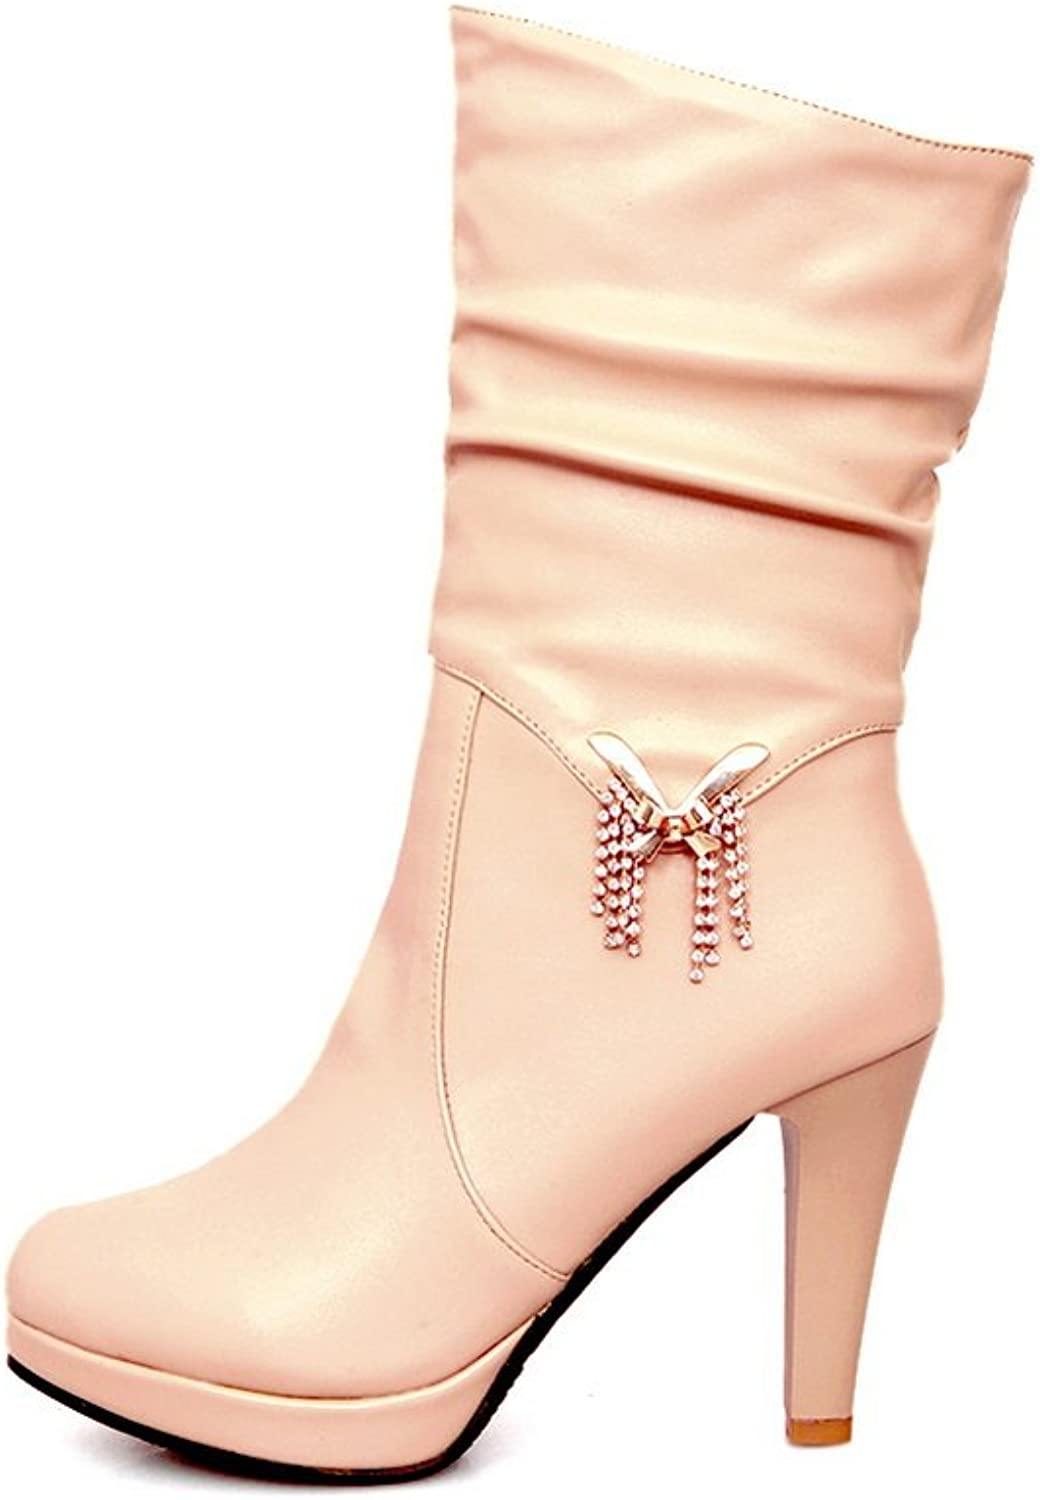 QueenFashion Women's Sweet Style Solid High Heels Ankle Boots with Metalornament and Rhinestones